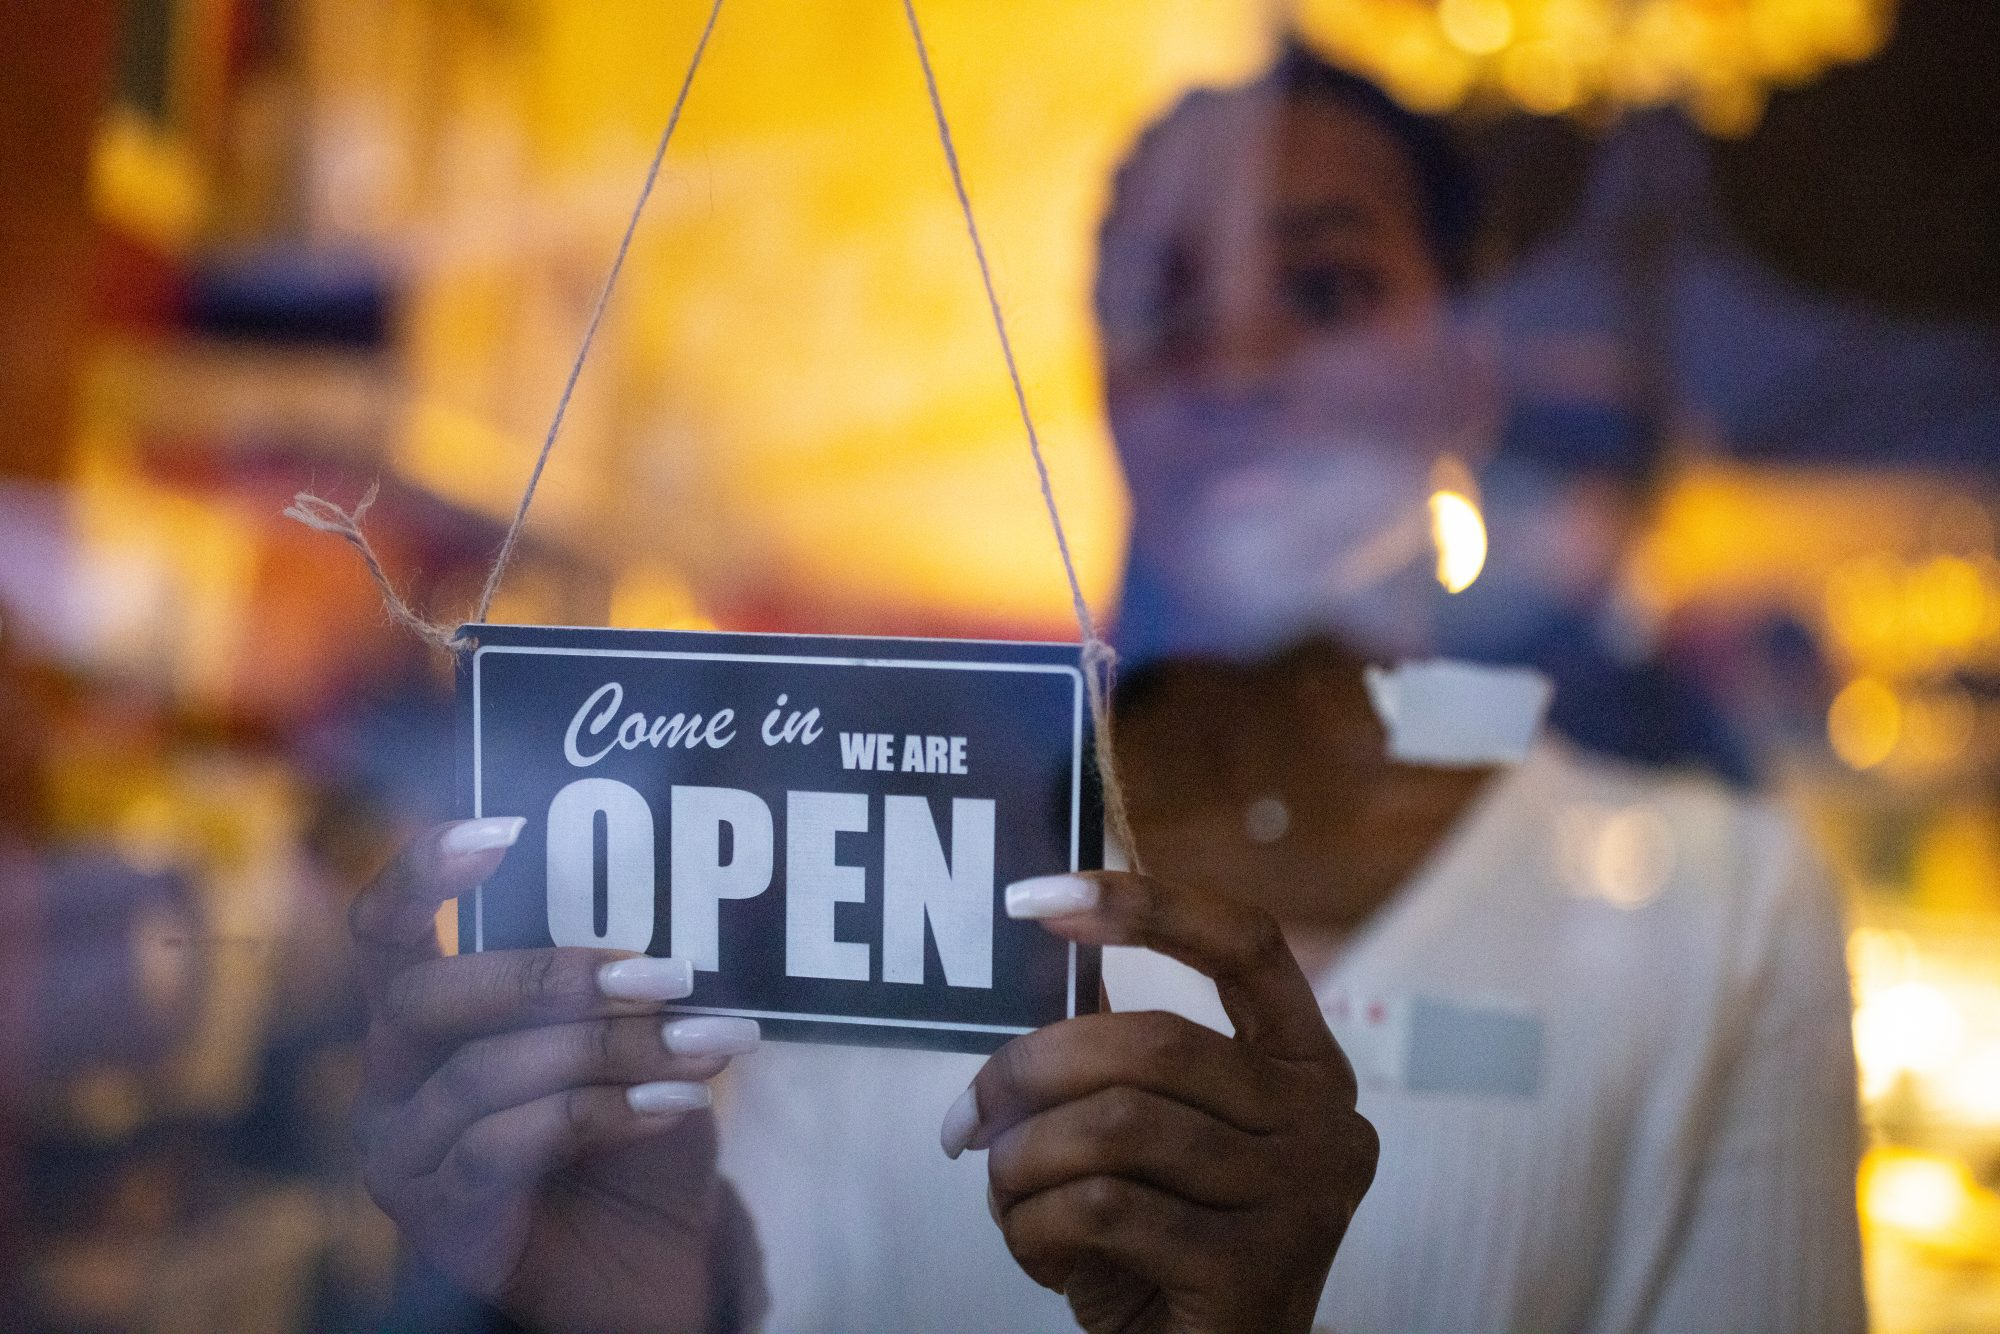 Business owner hanging an open sign at a cafe